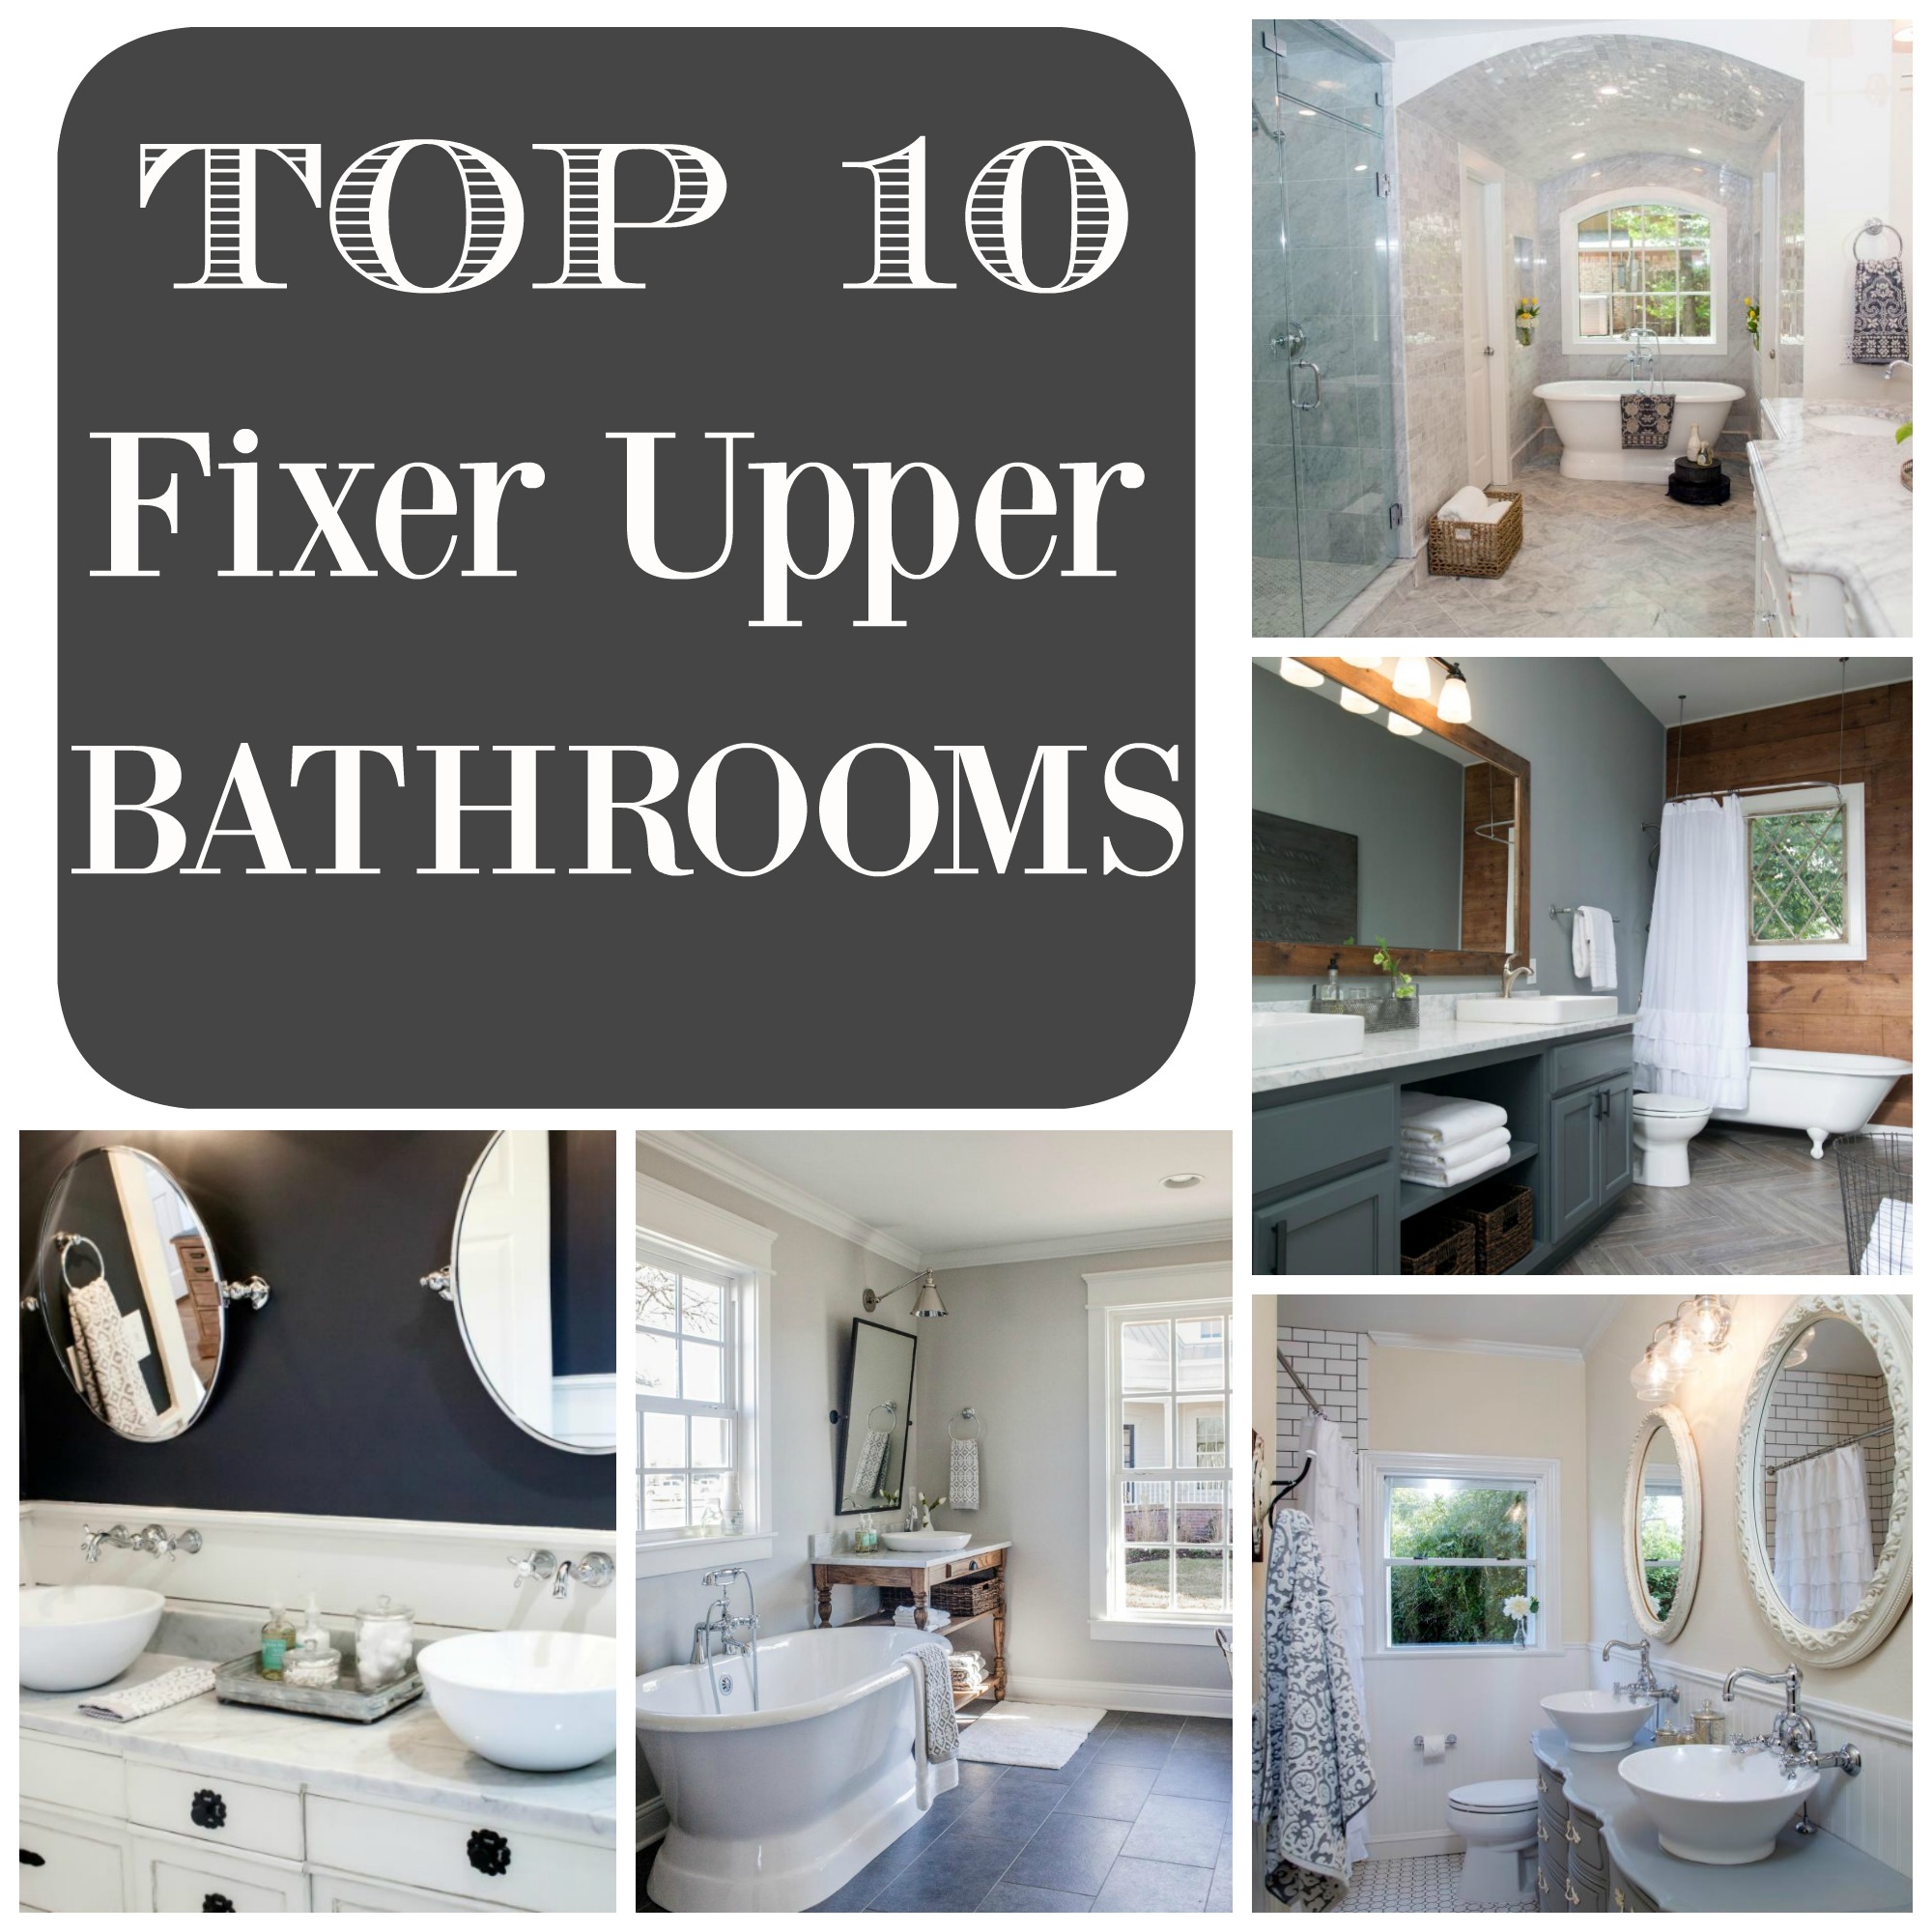 top 10 fixer upper bathrooms daily dose of style. Black Bedroom Furniture Sets. Home Design Ideas